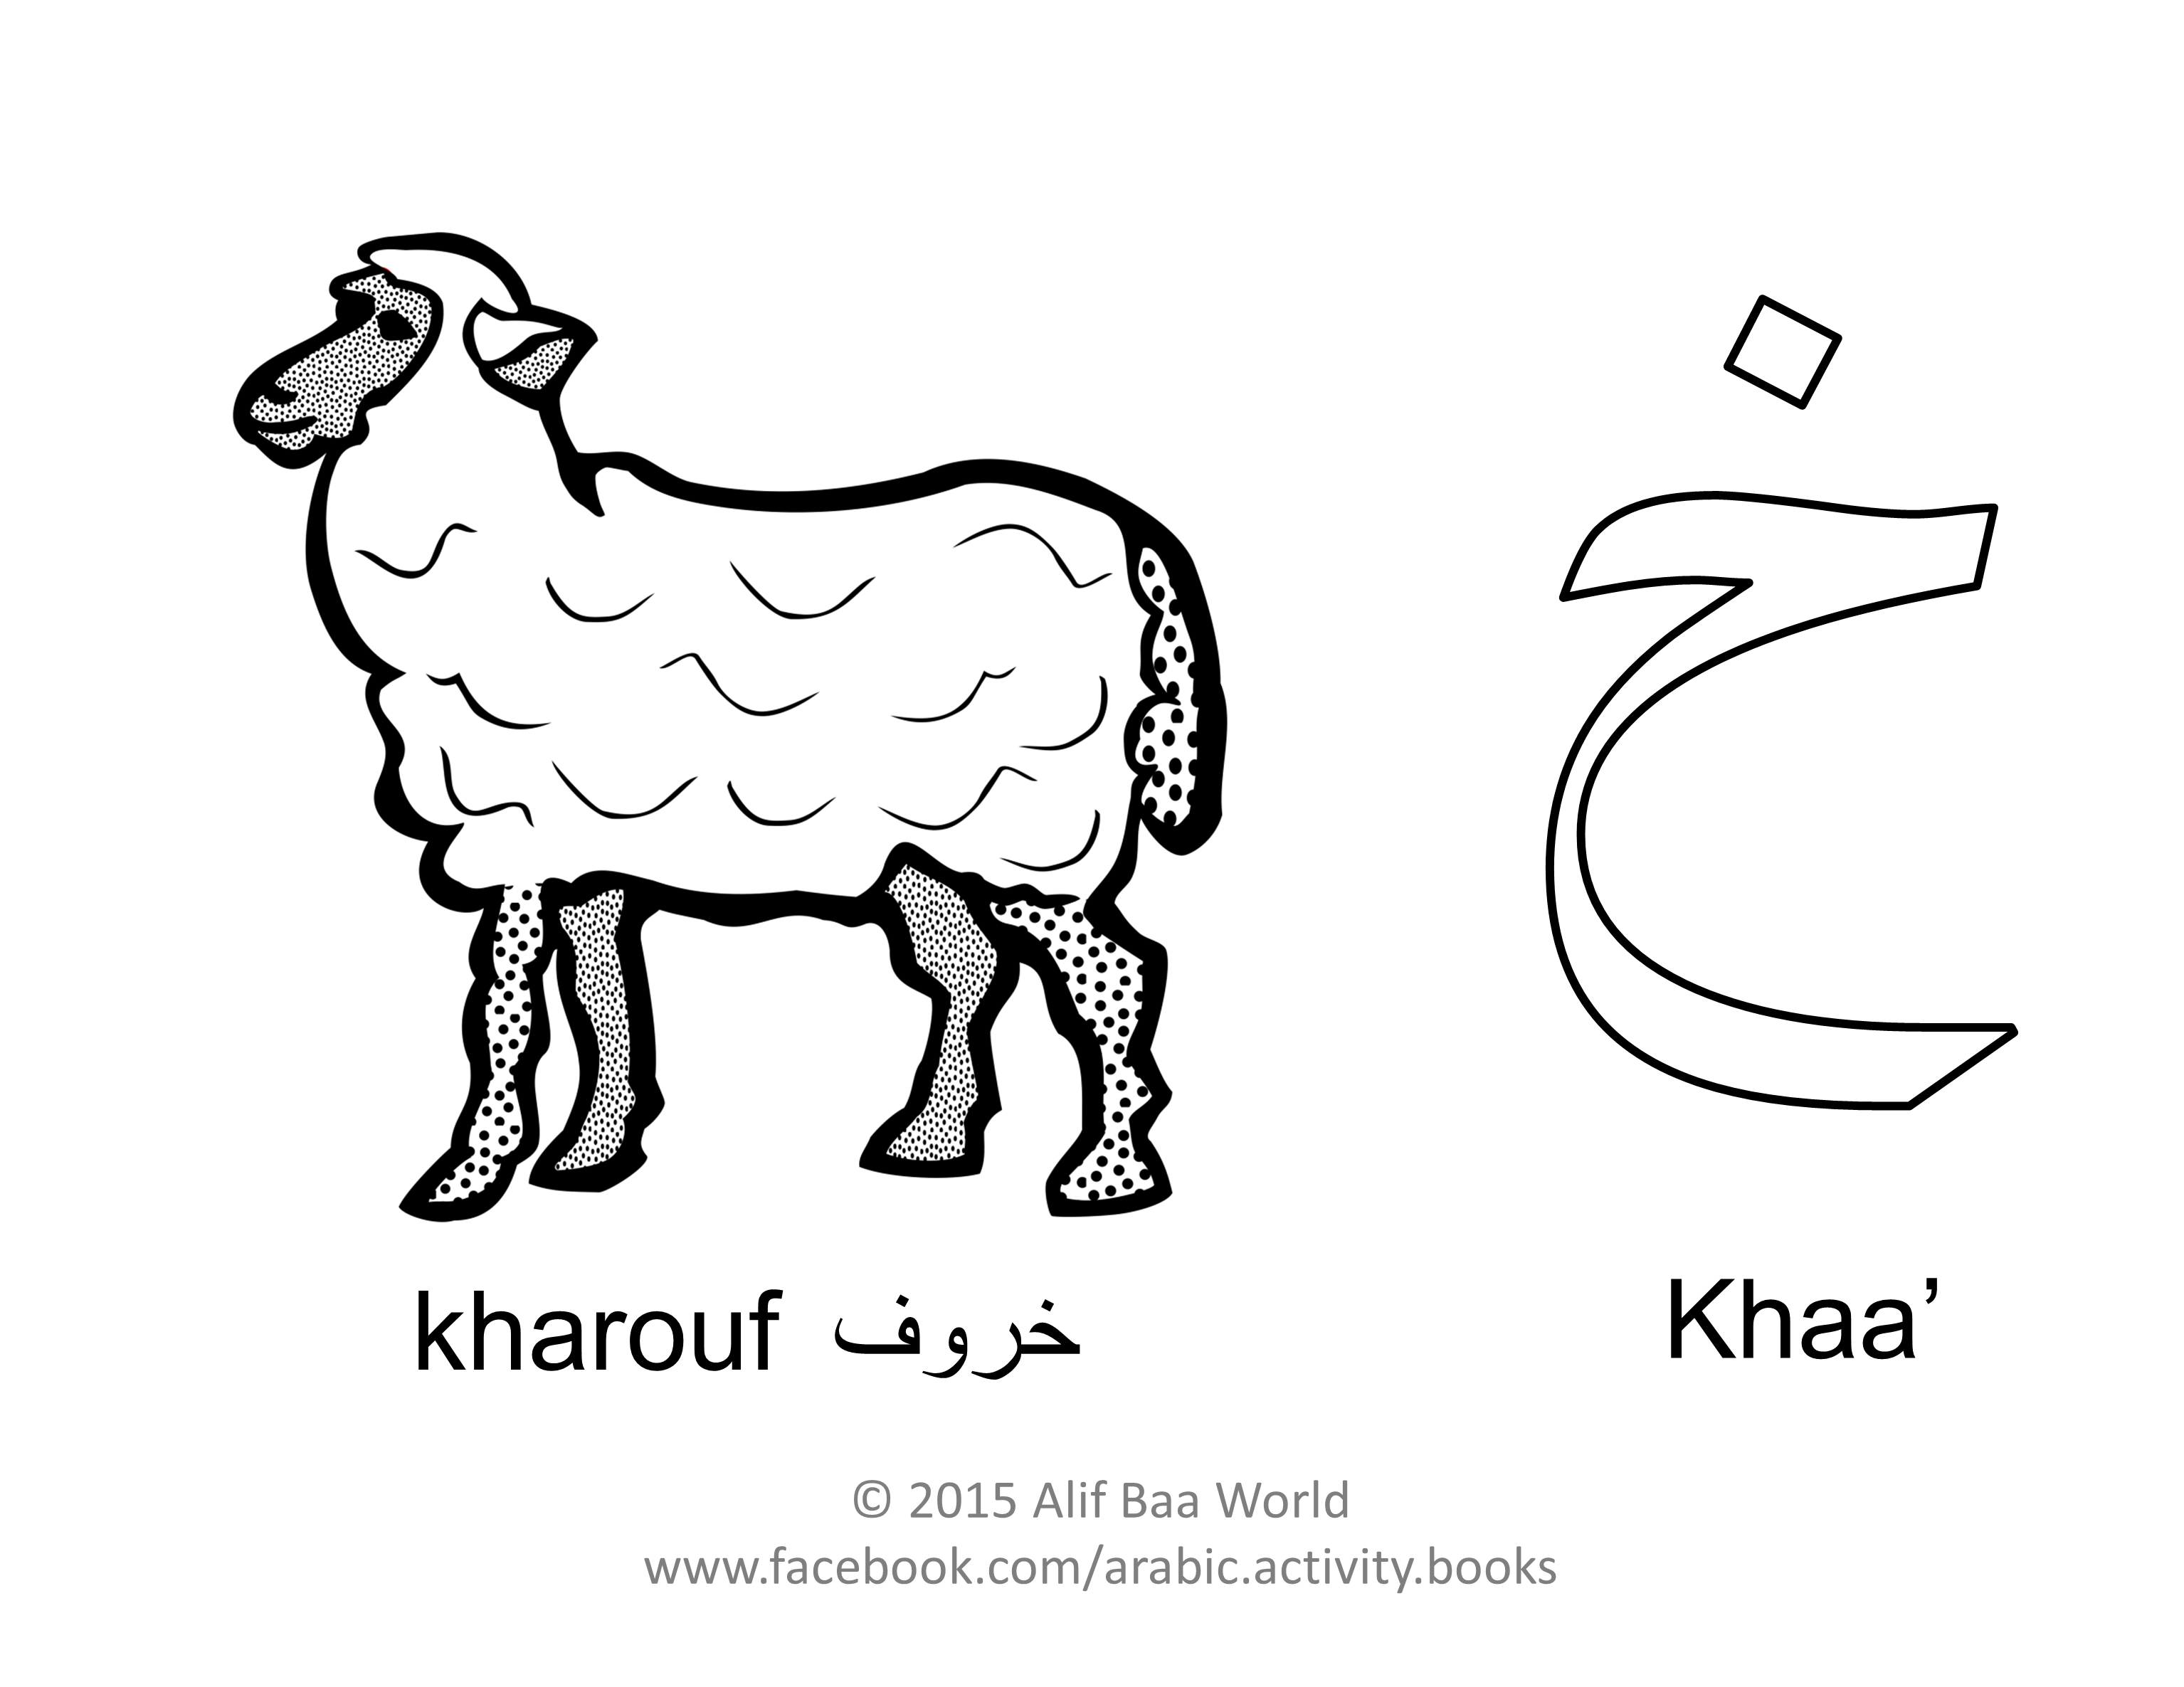 The Seventh Letter Of The Arabic Alphabet Is خ Name Khaa Sound Kh For خروف Pronounced Learn Arabic Online Learning Arabic Arabic Alphabet For Kids